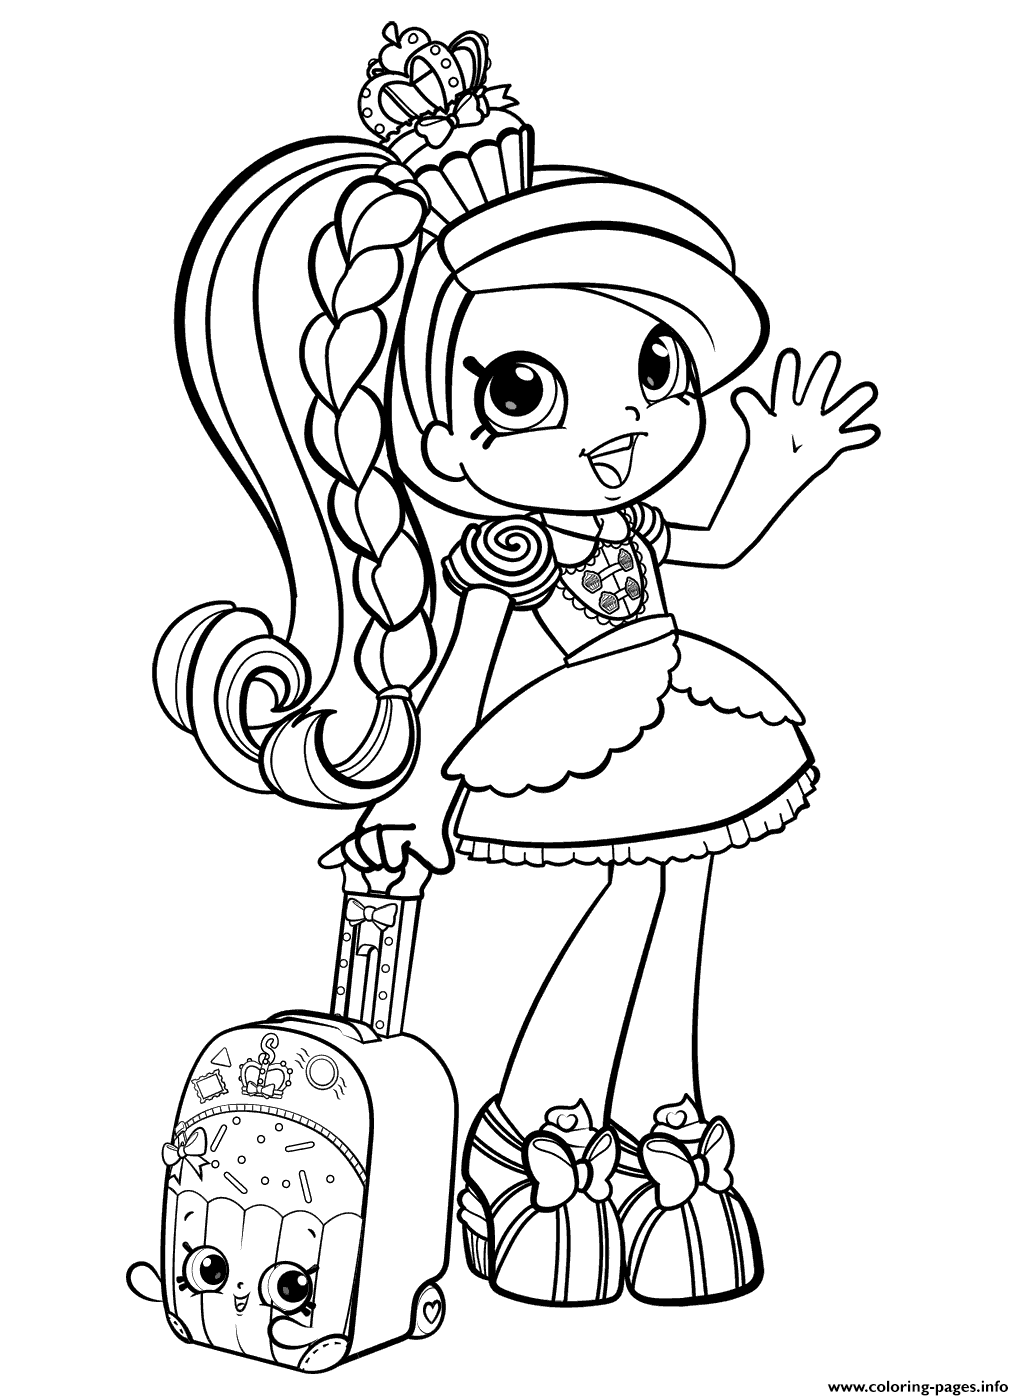 explore more printable shopkins coloring book - Girl Coloring Pages